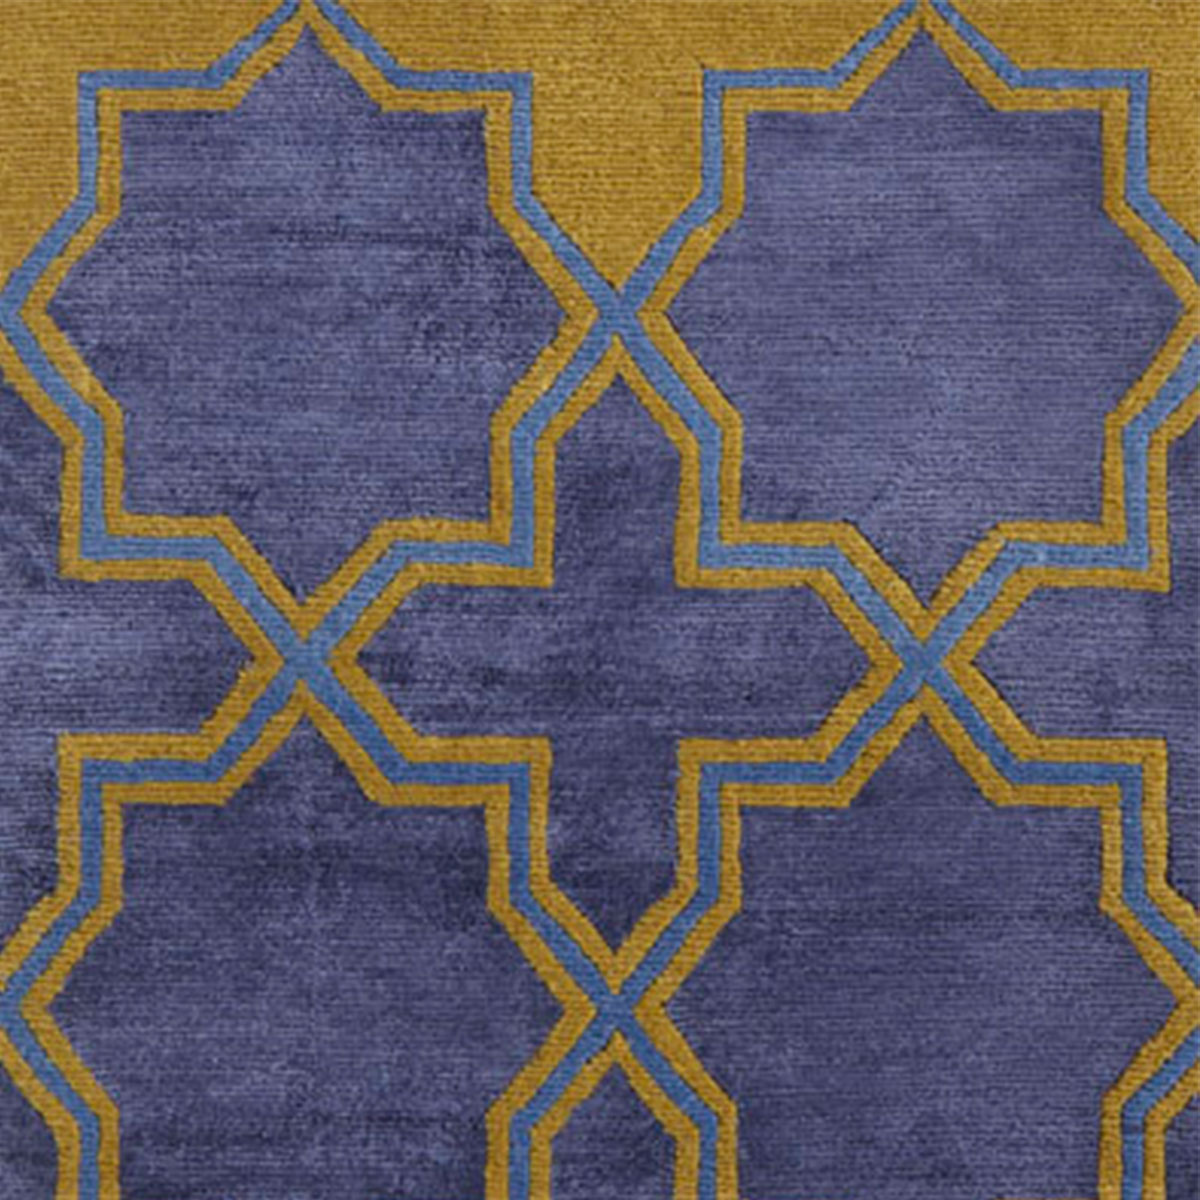 marrakesh_wool-silk_hand-knotted_patterson-flynn-martin_pfm